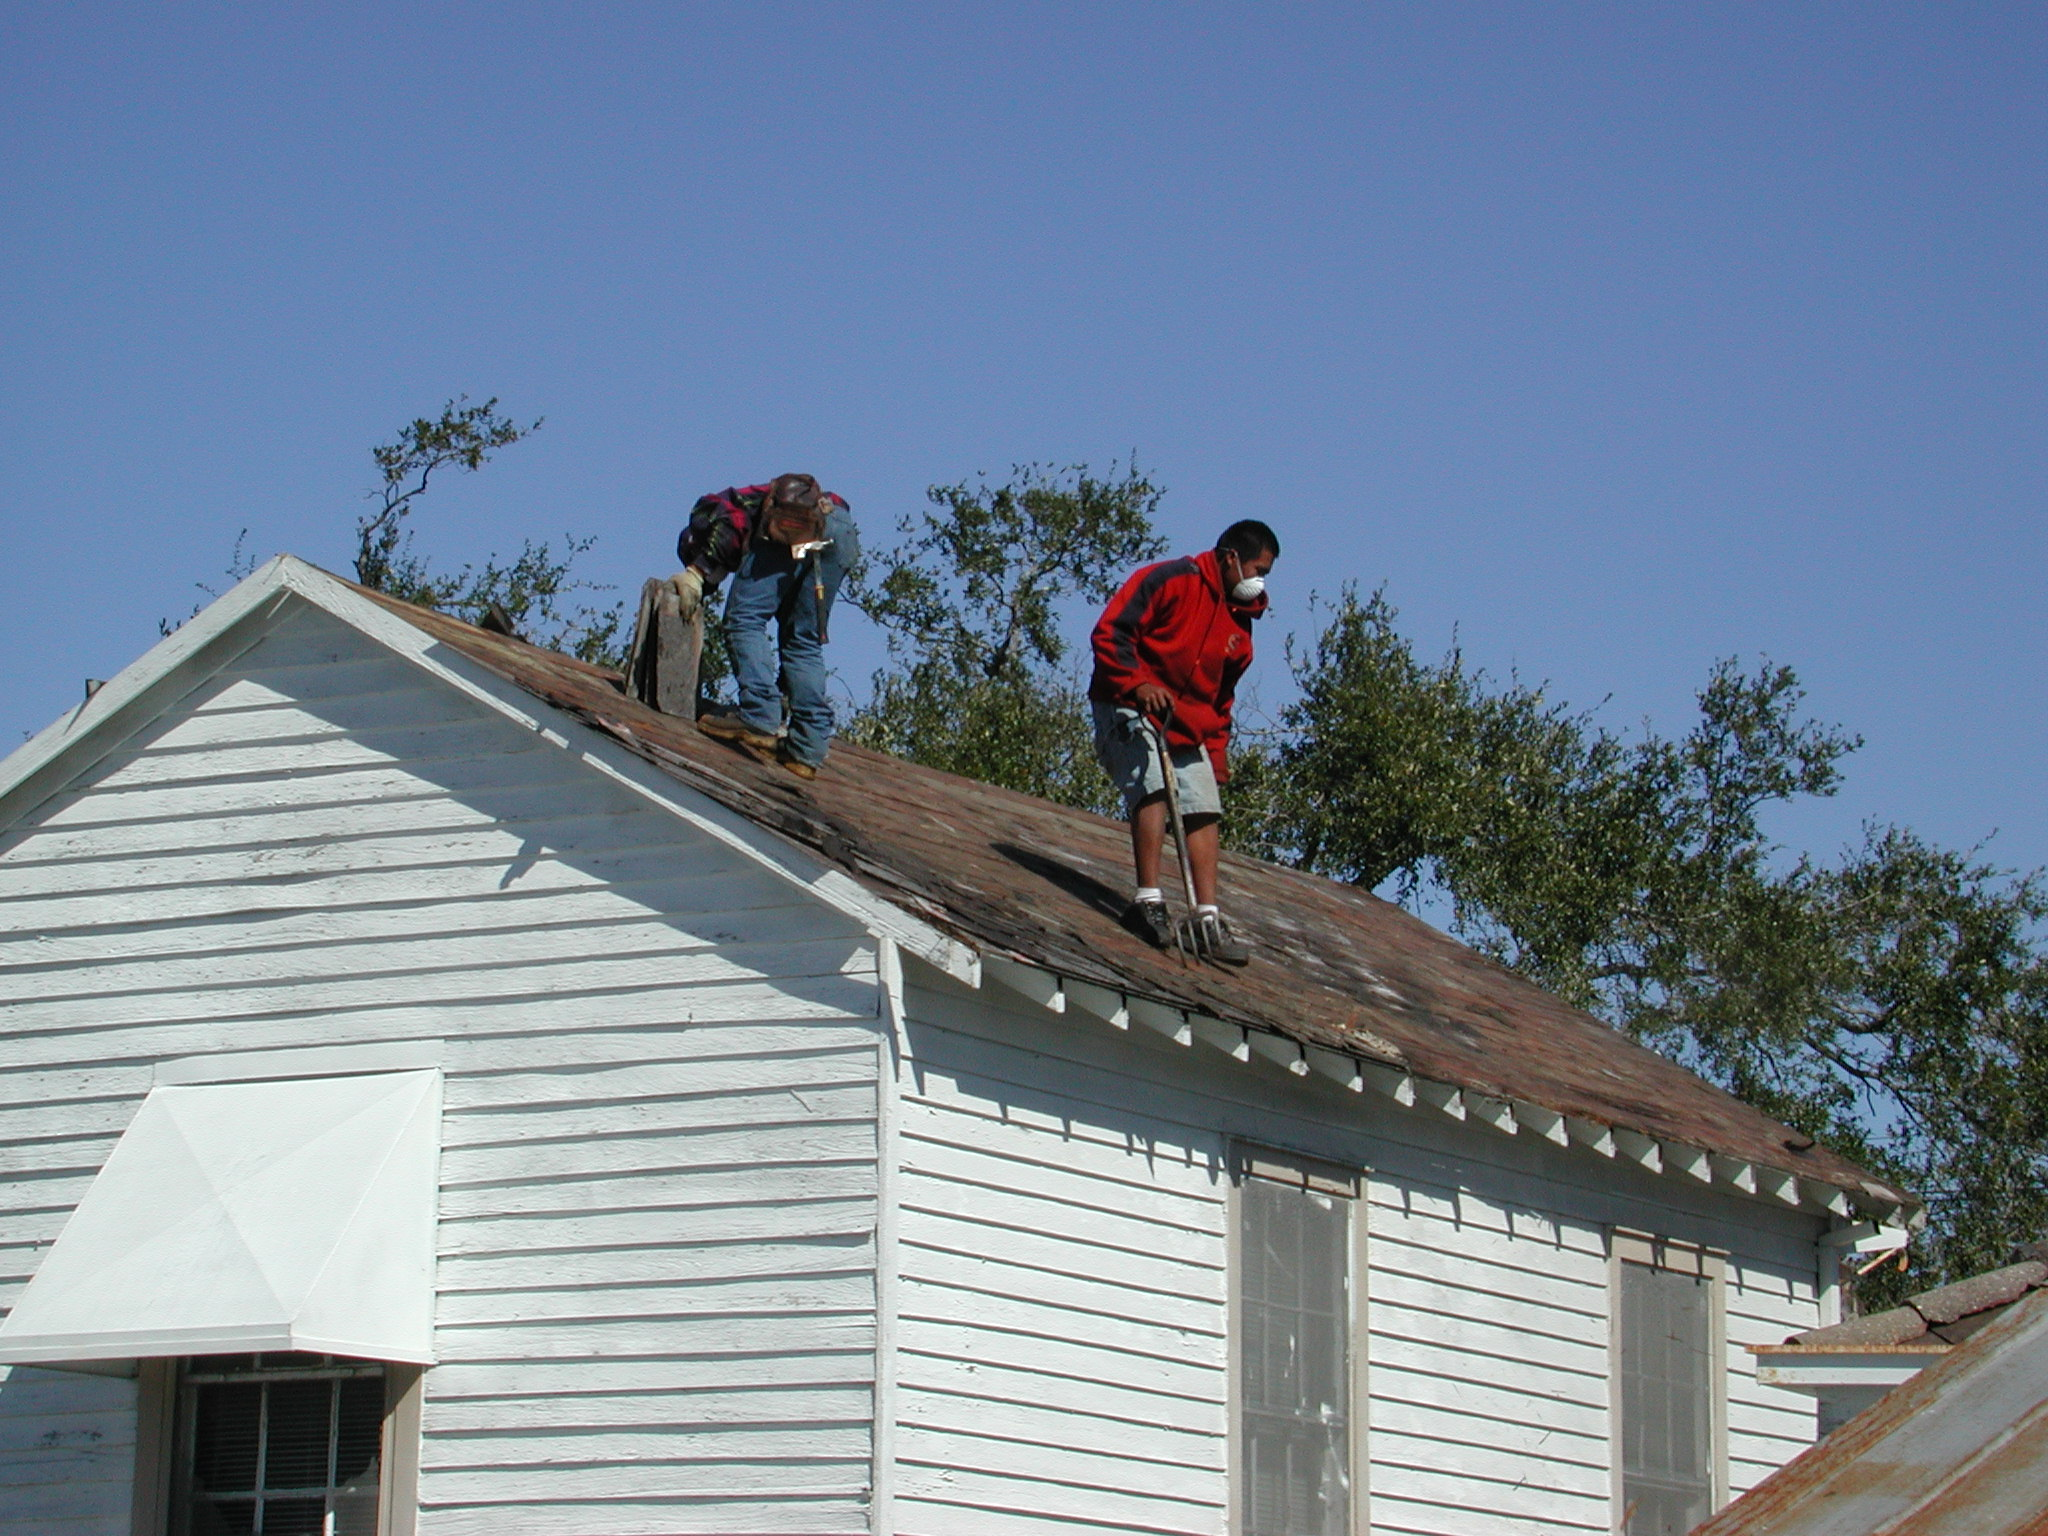 Roofer wikidwelling for Roofing forum